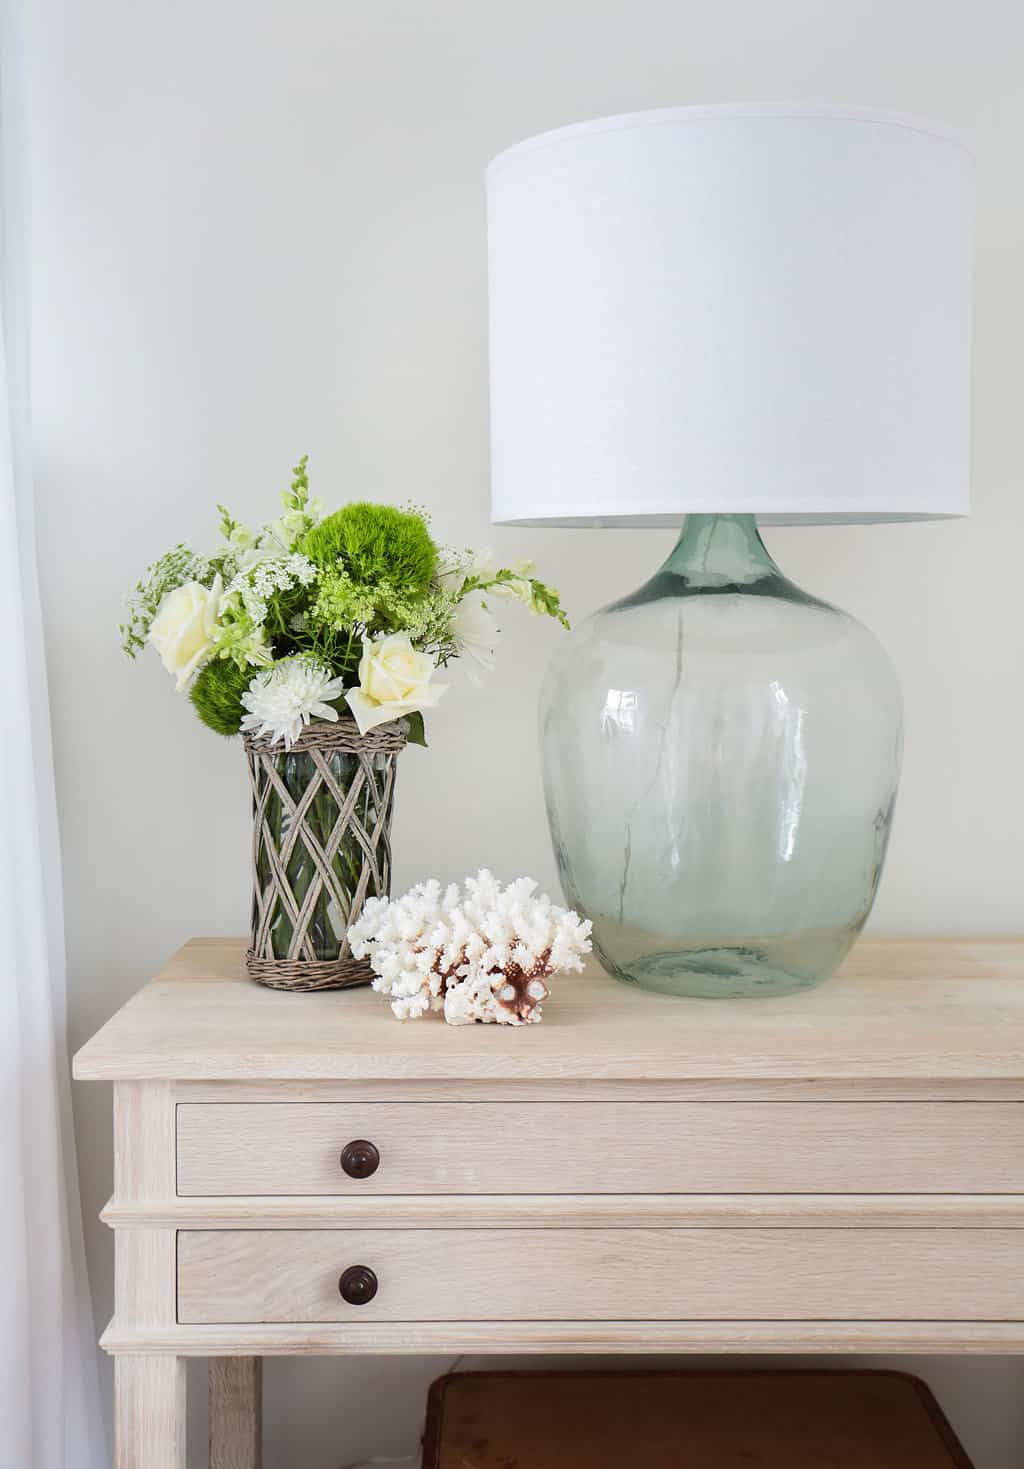 HOM-Modern-Farmhouse-With-Coastal-Flare-by-Blackband-Design-nightstand